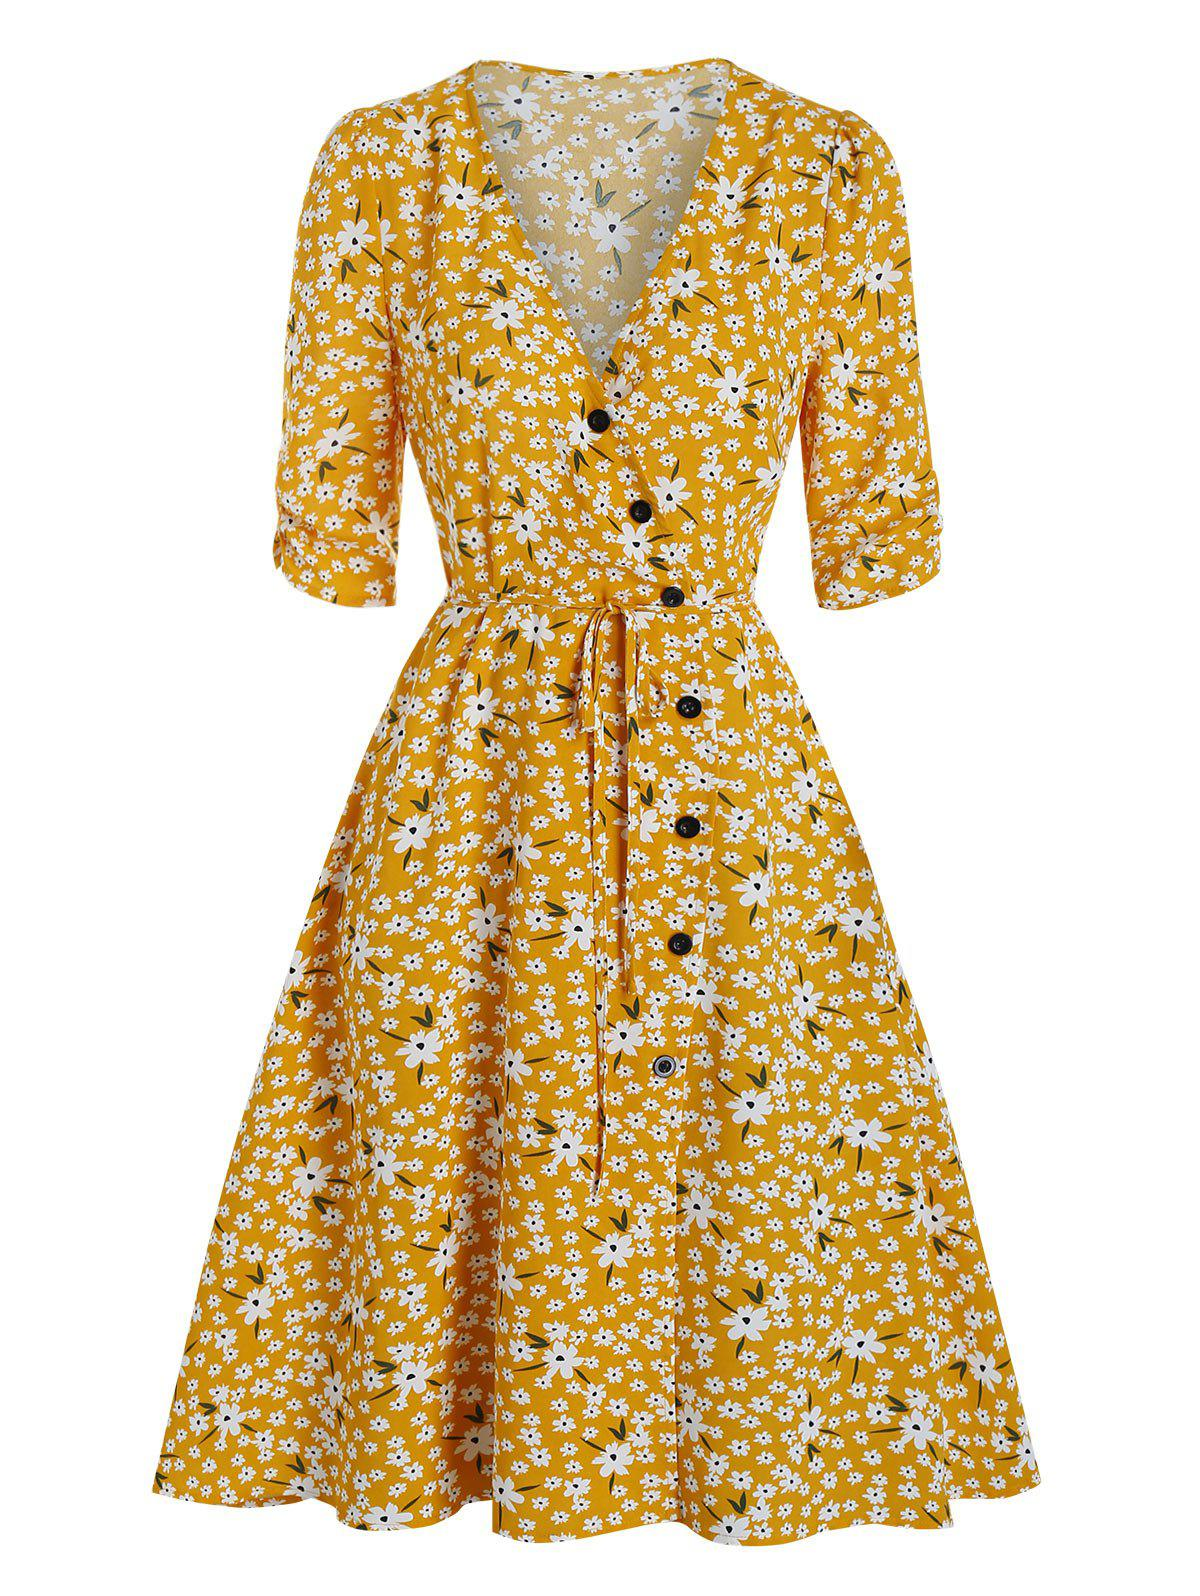 Floral Print Mock Button Wrap Dress - GOLDEN BROWN 3XL